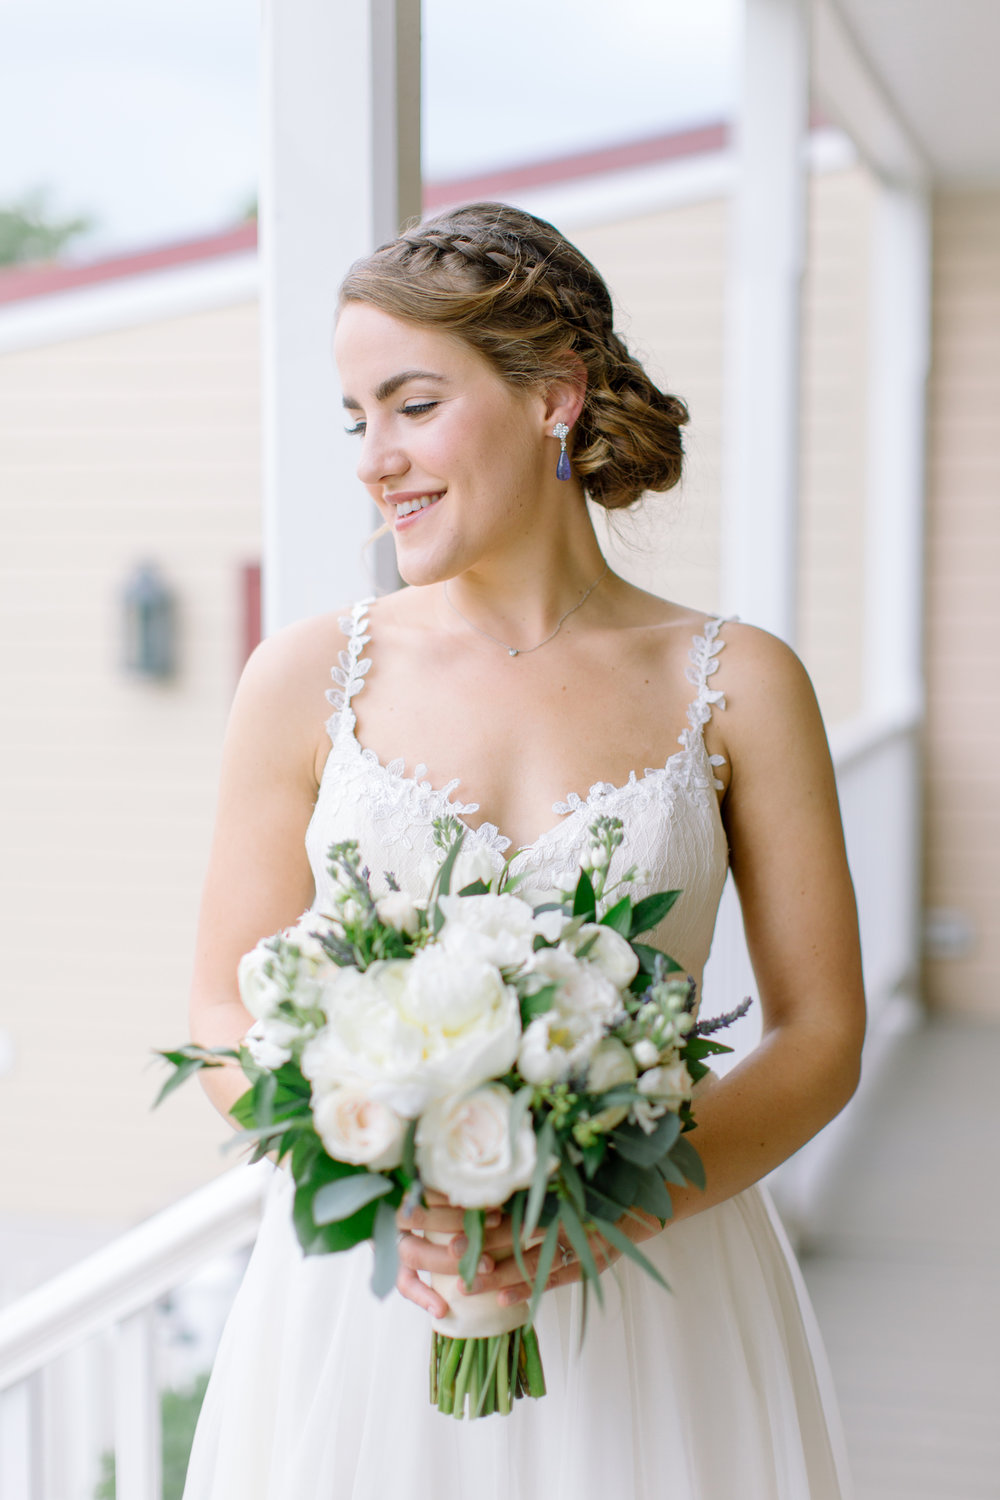 Truly White Flowers for Your Wedding — J. Morris Flowers